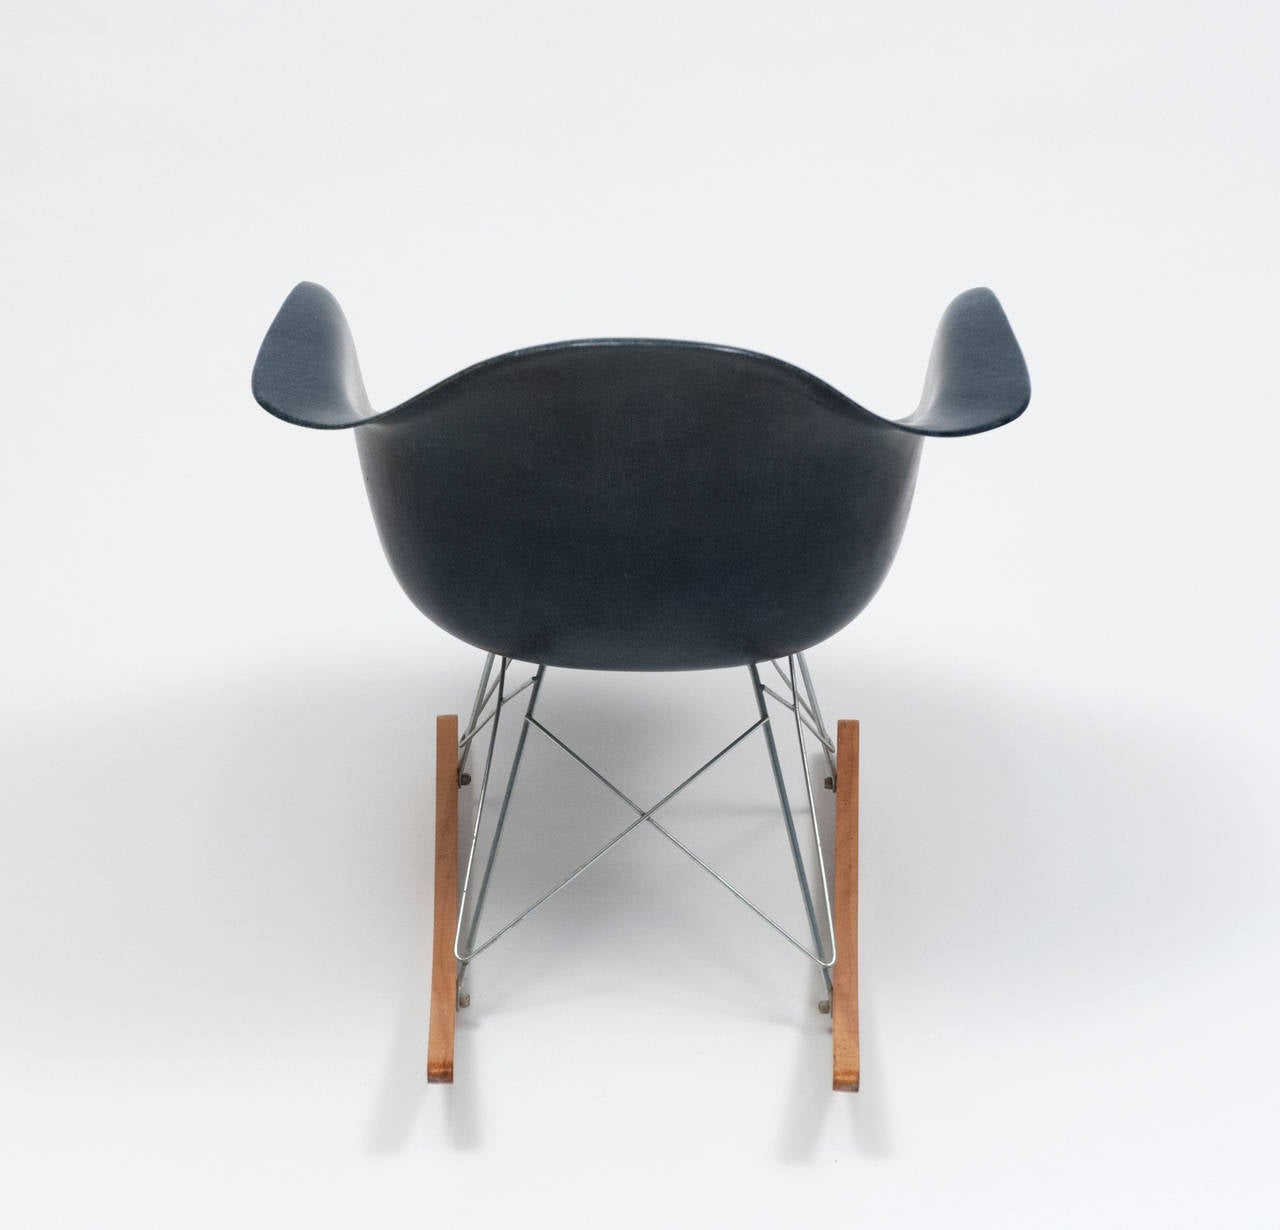 Very Impressive portraiture of Eames Navy Blue Shell Herman Miller Rocking Chair 1962 For Sale at  with #8B5C40 color and 1280x1230 pixels